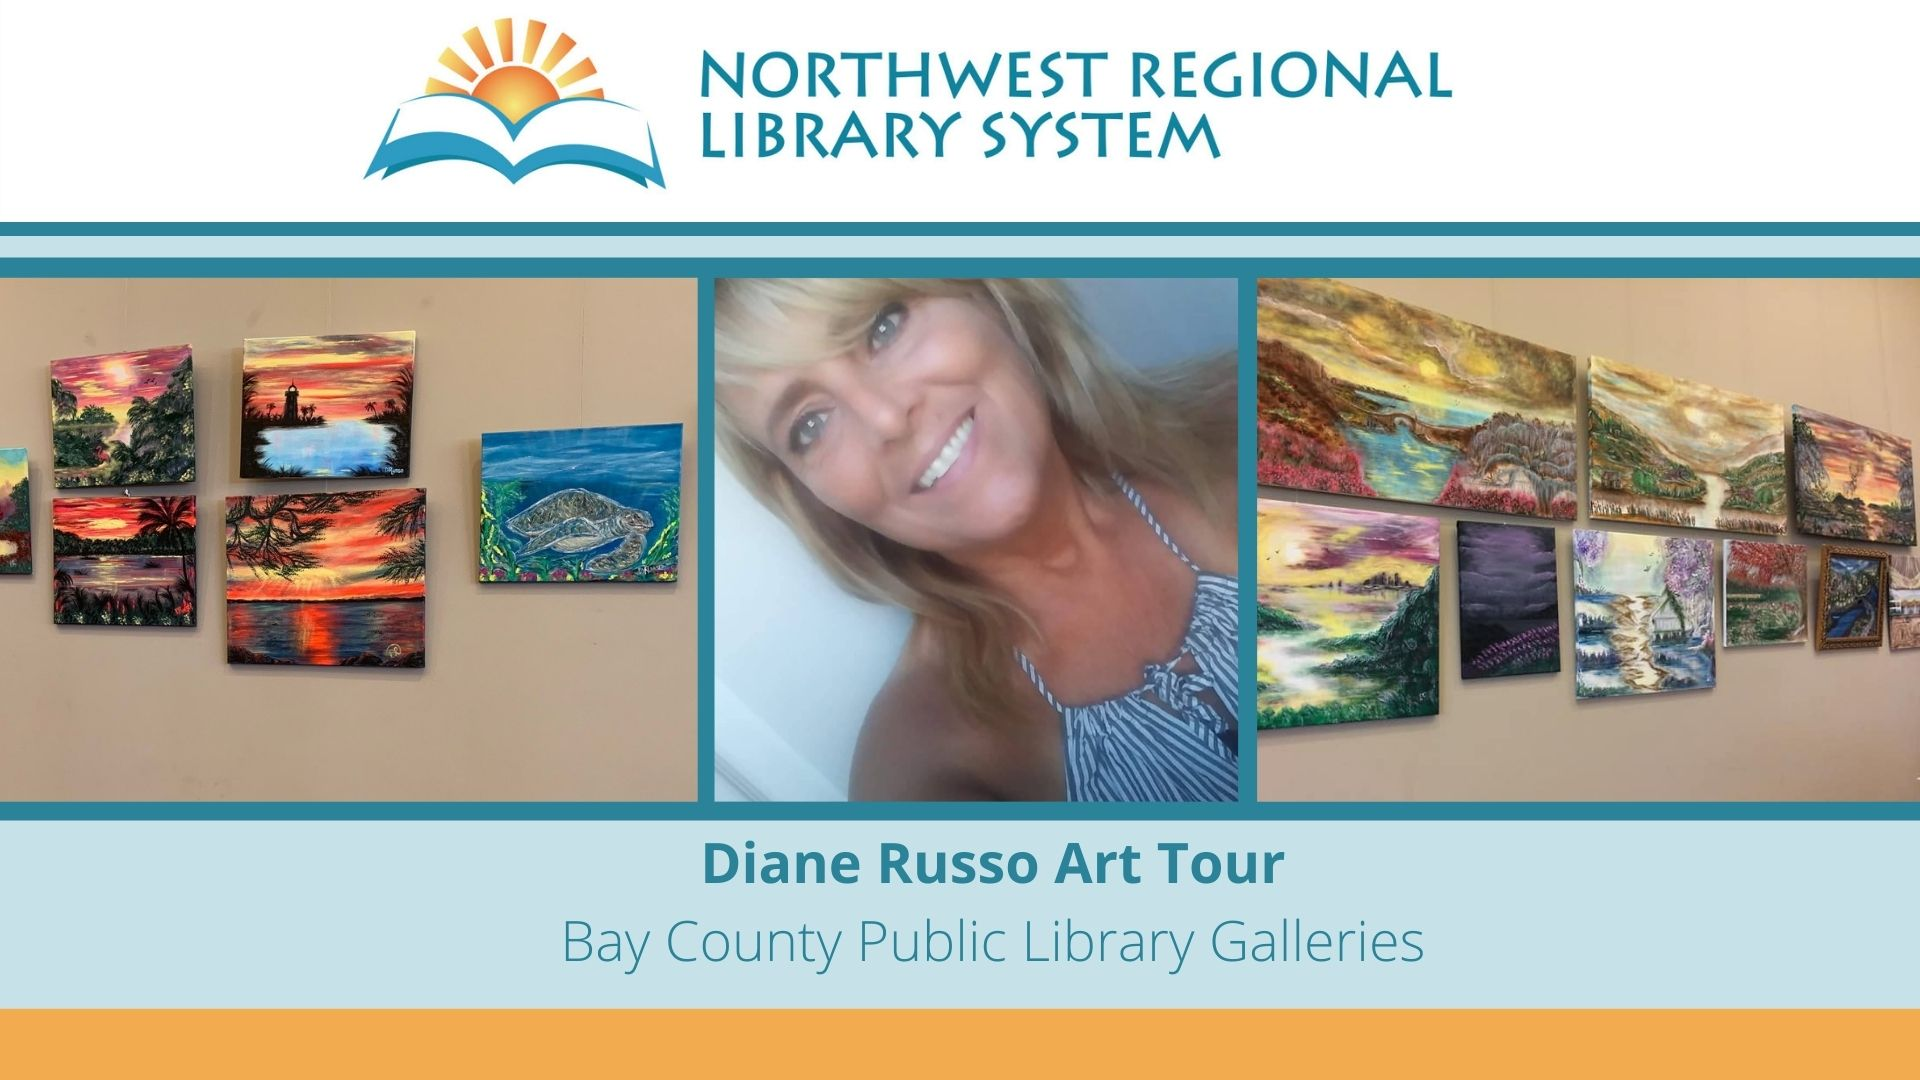 Photograph includes Diane Russo in the center and two images of her landscape paintings in acrylic